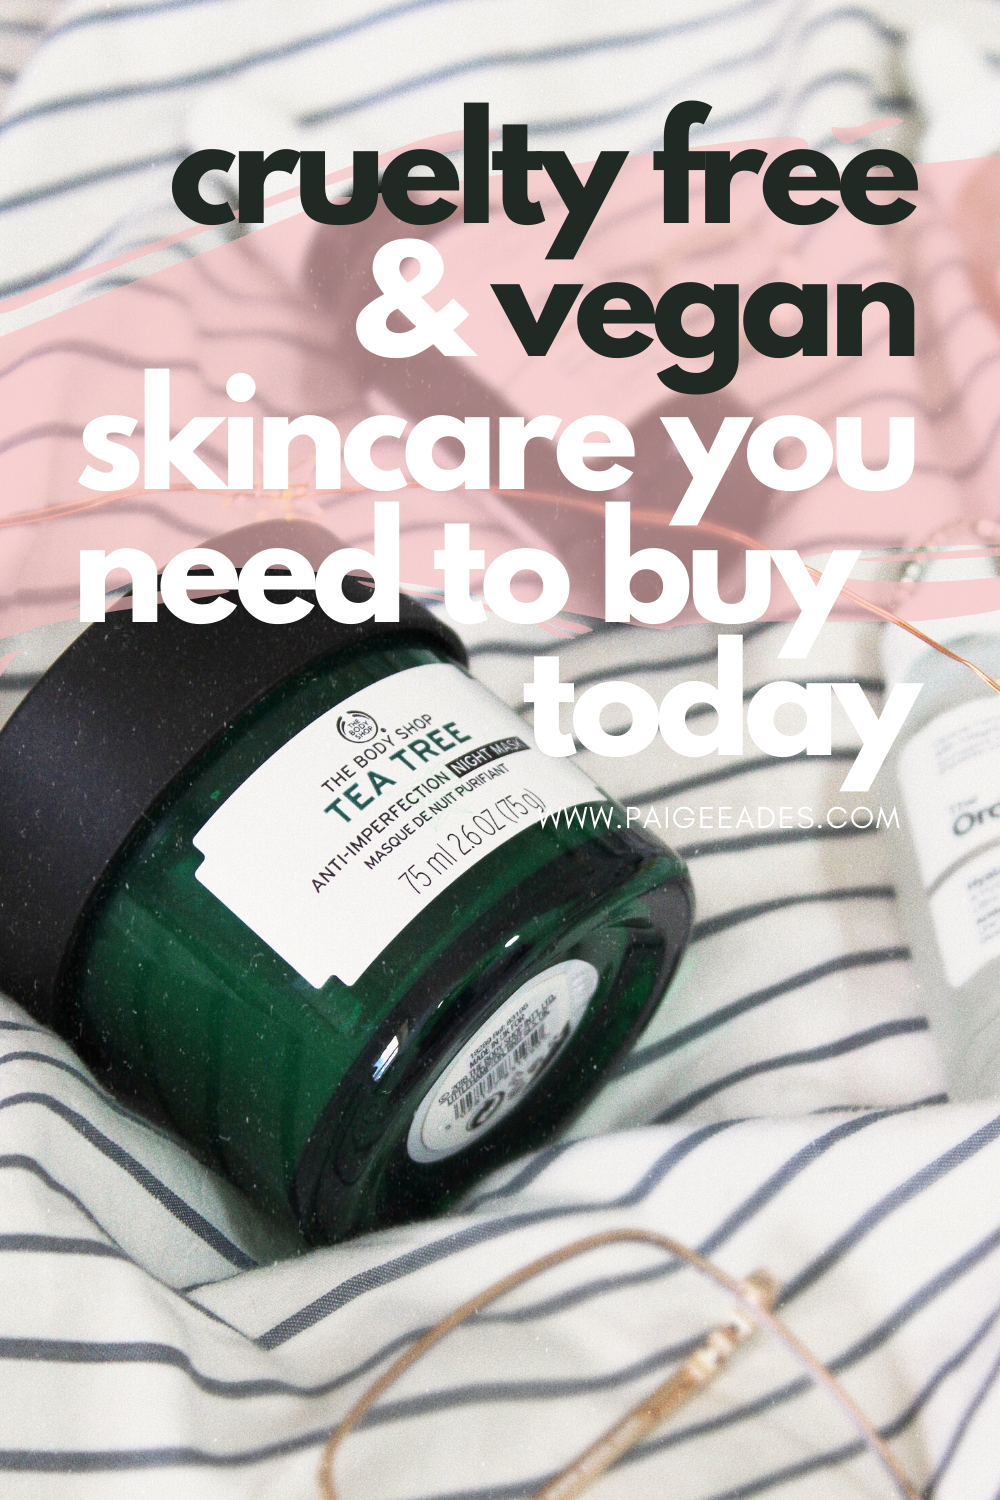 cruelty free and vegan makeup to try next white bedding sustainable